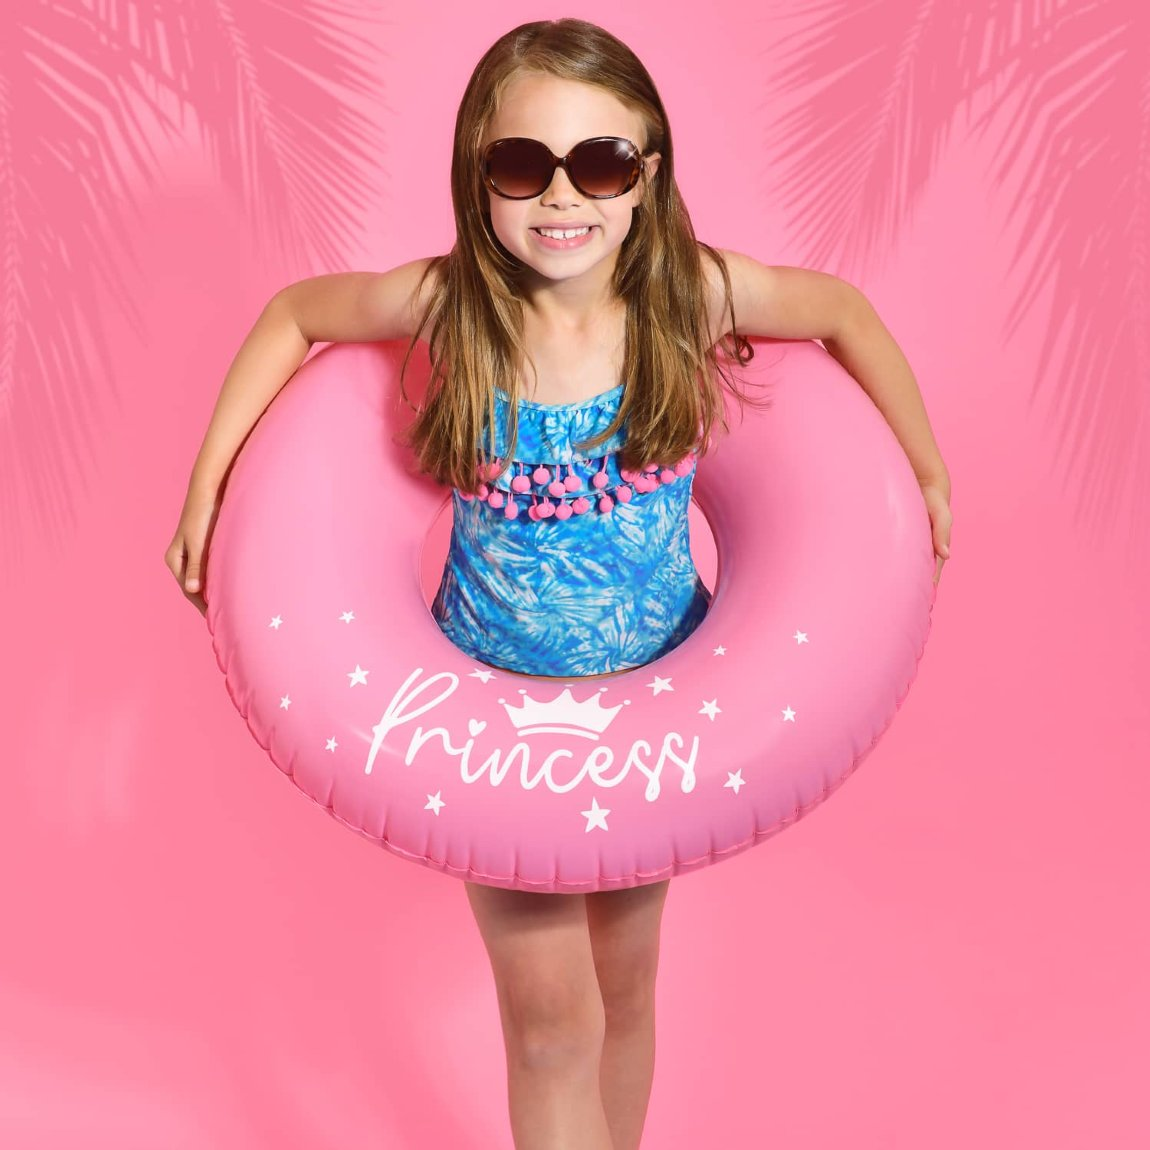 Kids Inflatable Swim Ring - Pink Princess